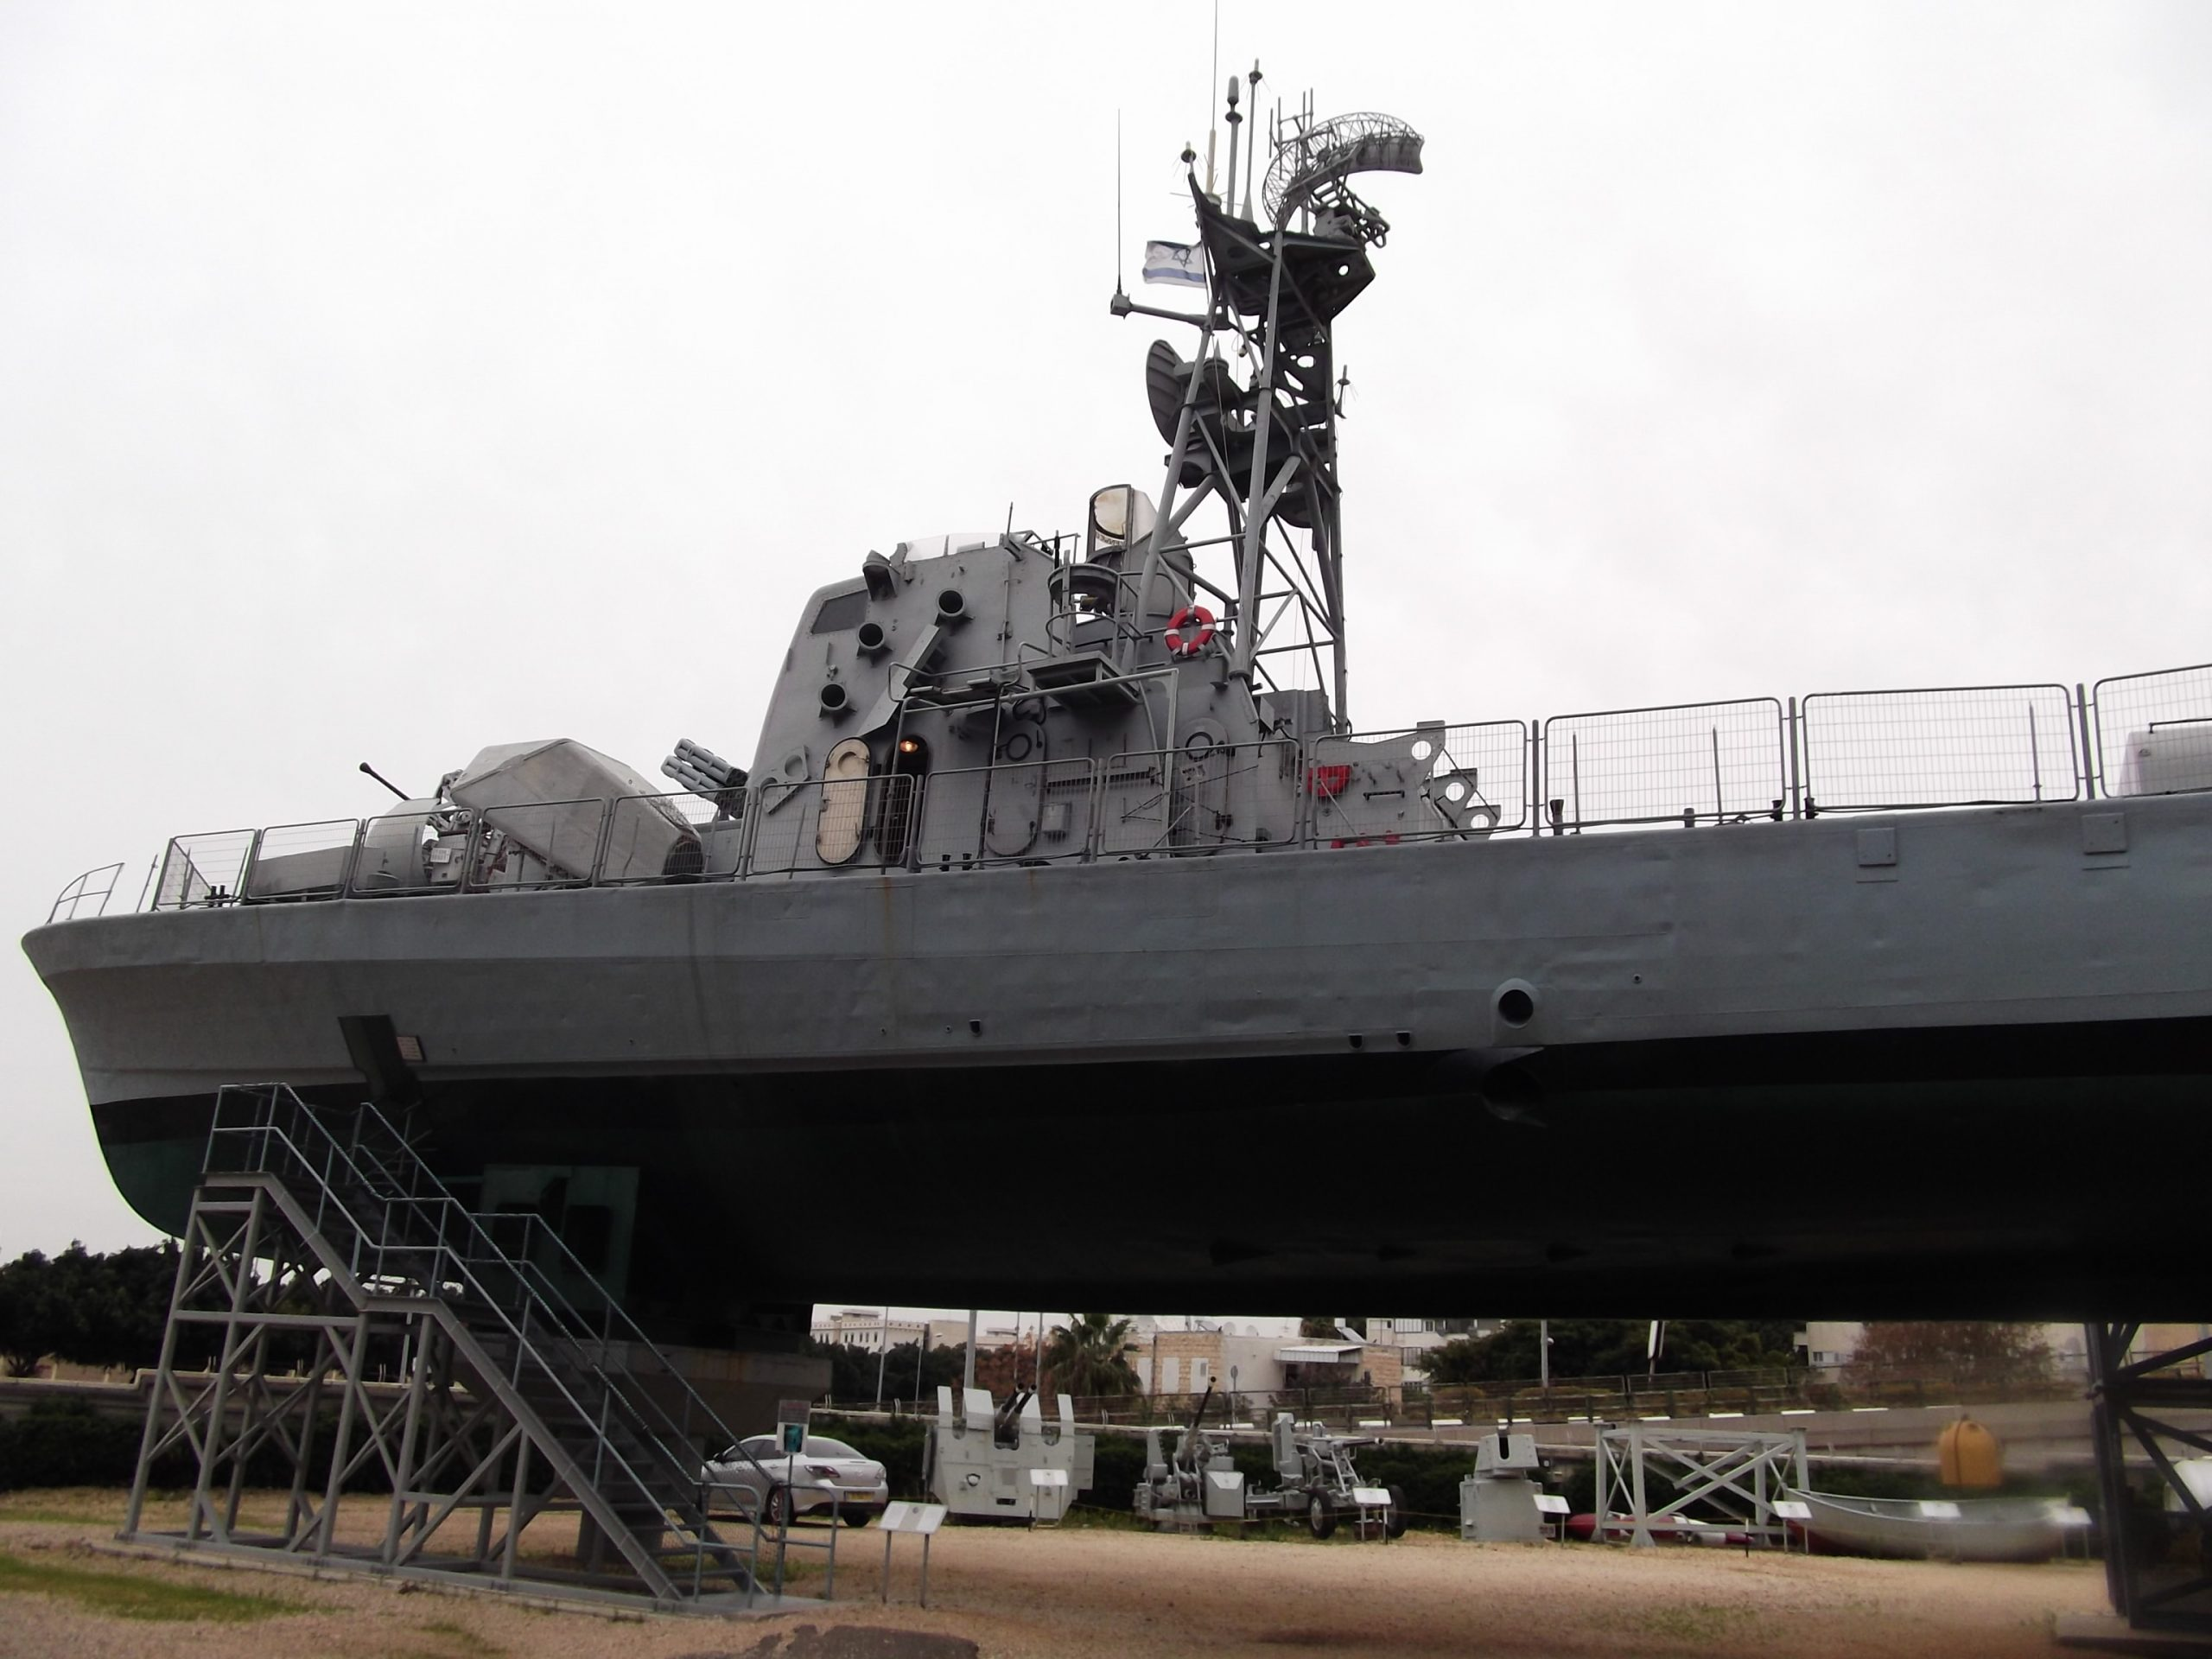 INS Mitvach at the Clandestine Immigration and Navy Museum